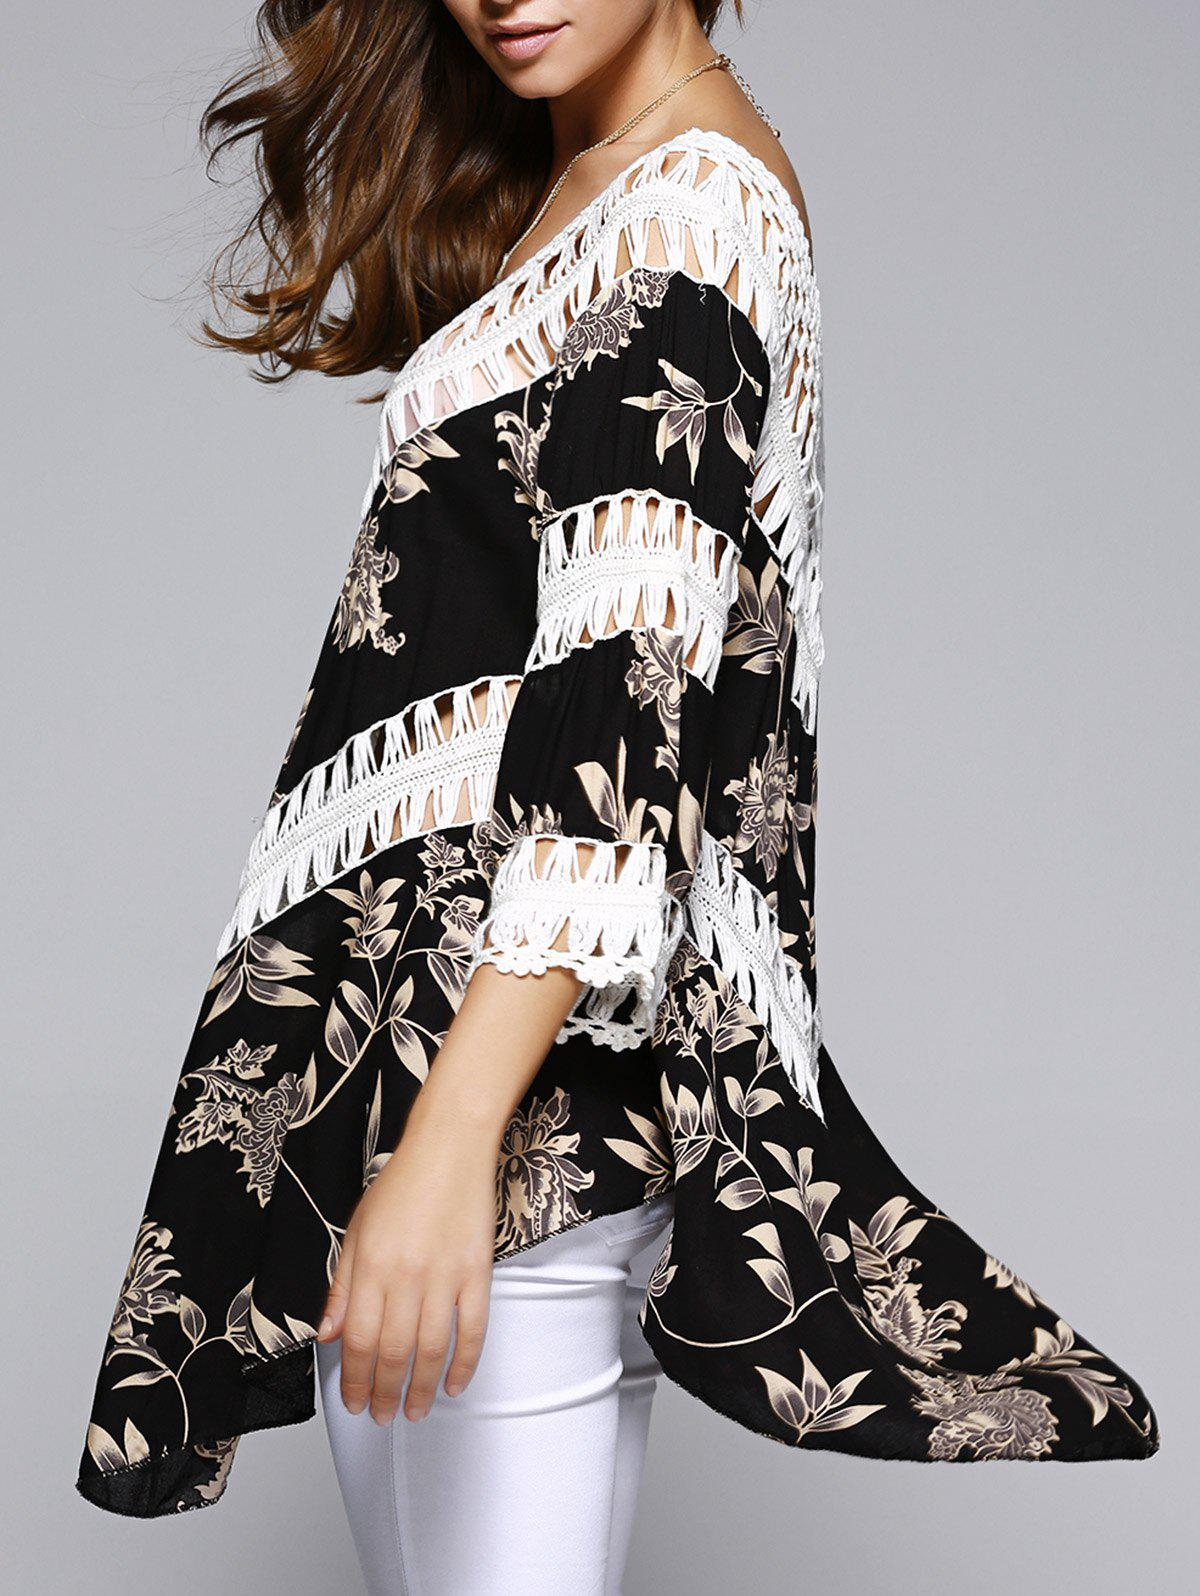 Ethnic Style Hollow Out Crochet Blouse For Women